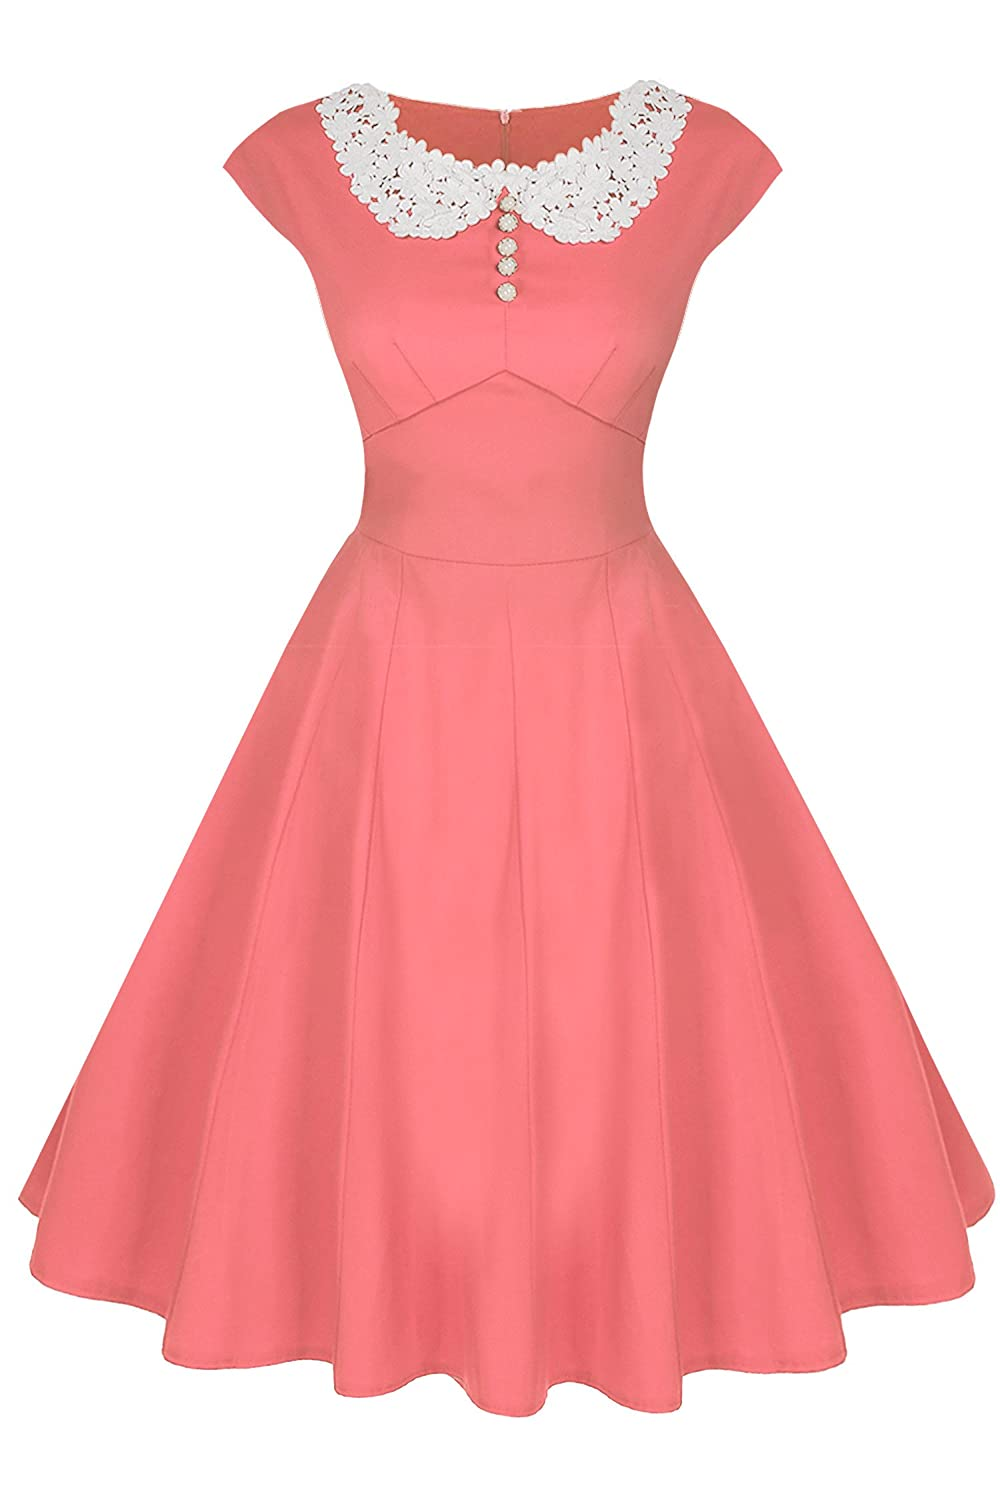 1950s Plus Size Dresses, Swing Dresses Audrey Hepburn Style 1940s Rockabilly Evening Dress $32.99 AT vintagedancer.com